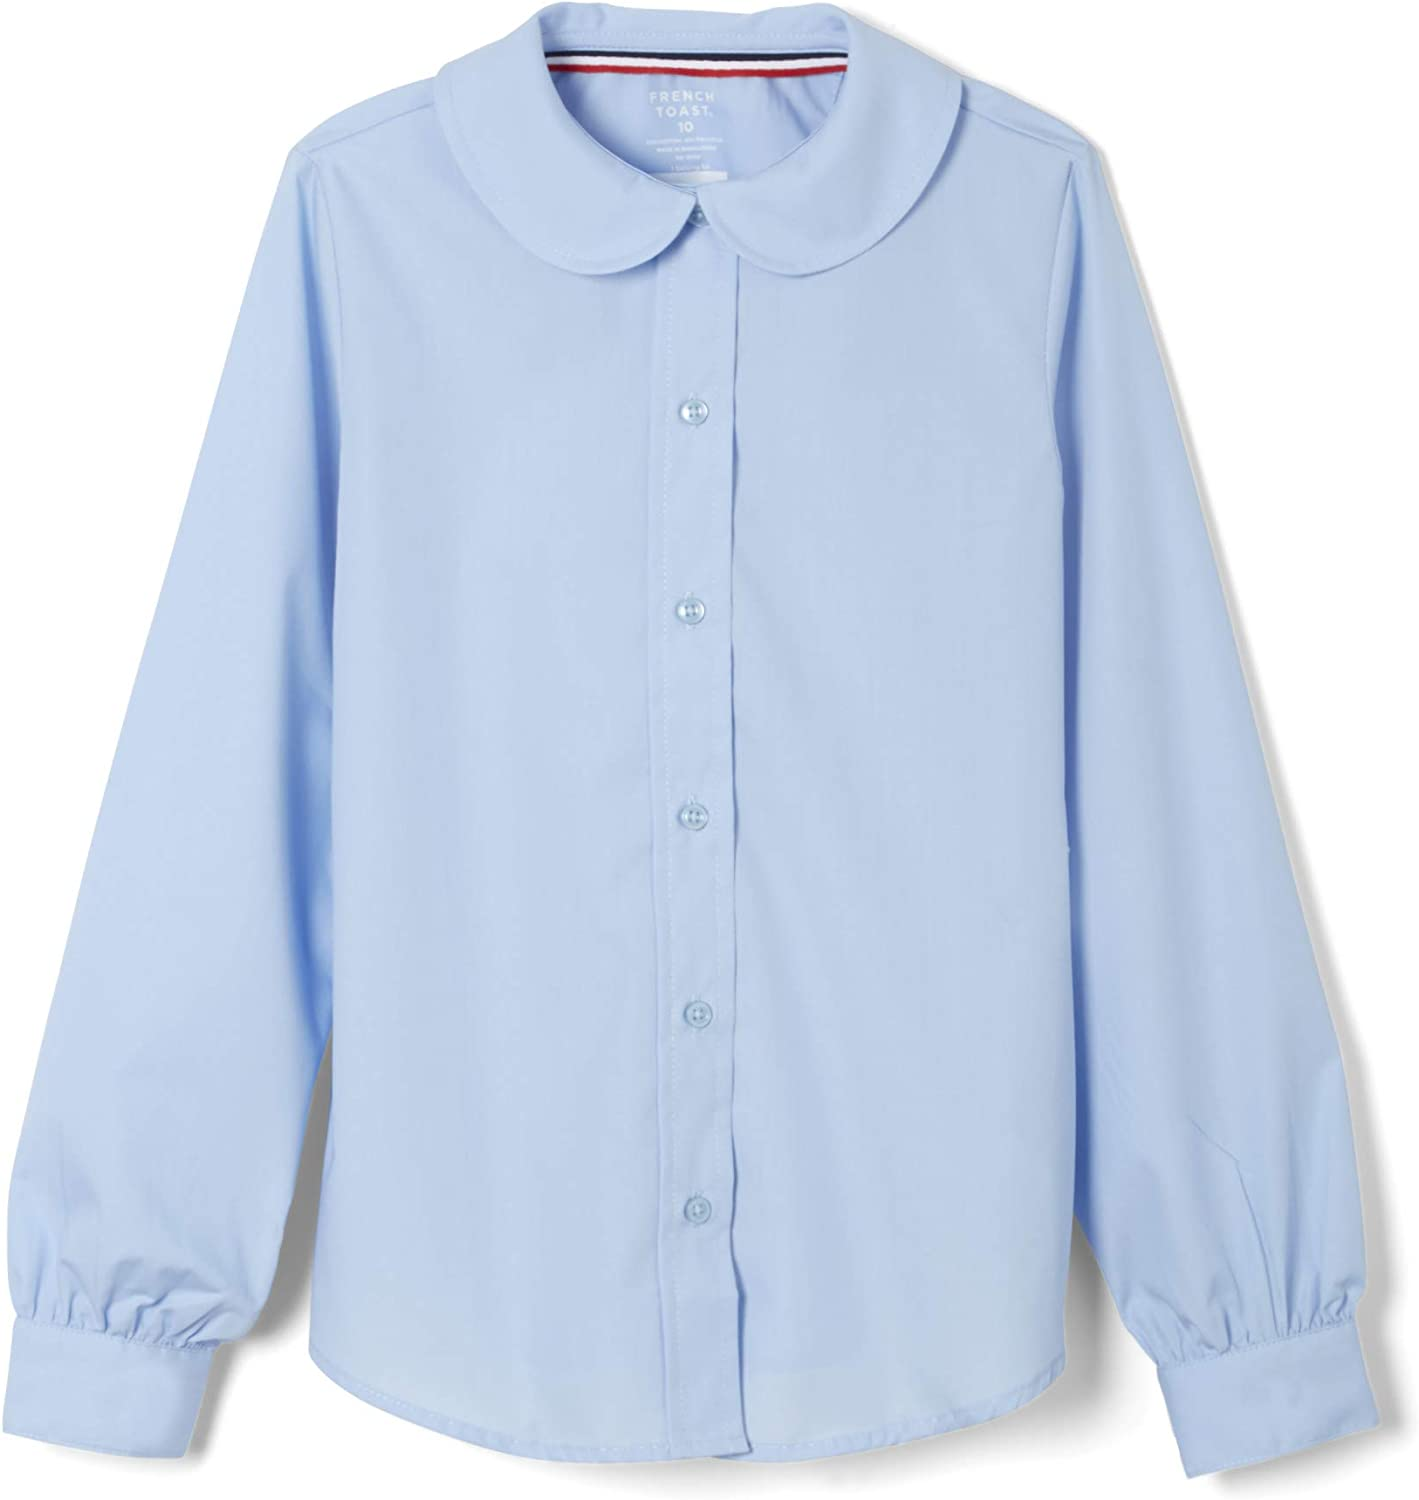 French Toast Girls Long Sleeve Woven Blouse with Peter Pan Collar Standard /& Plus